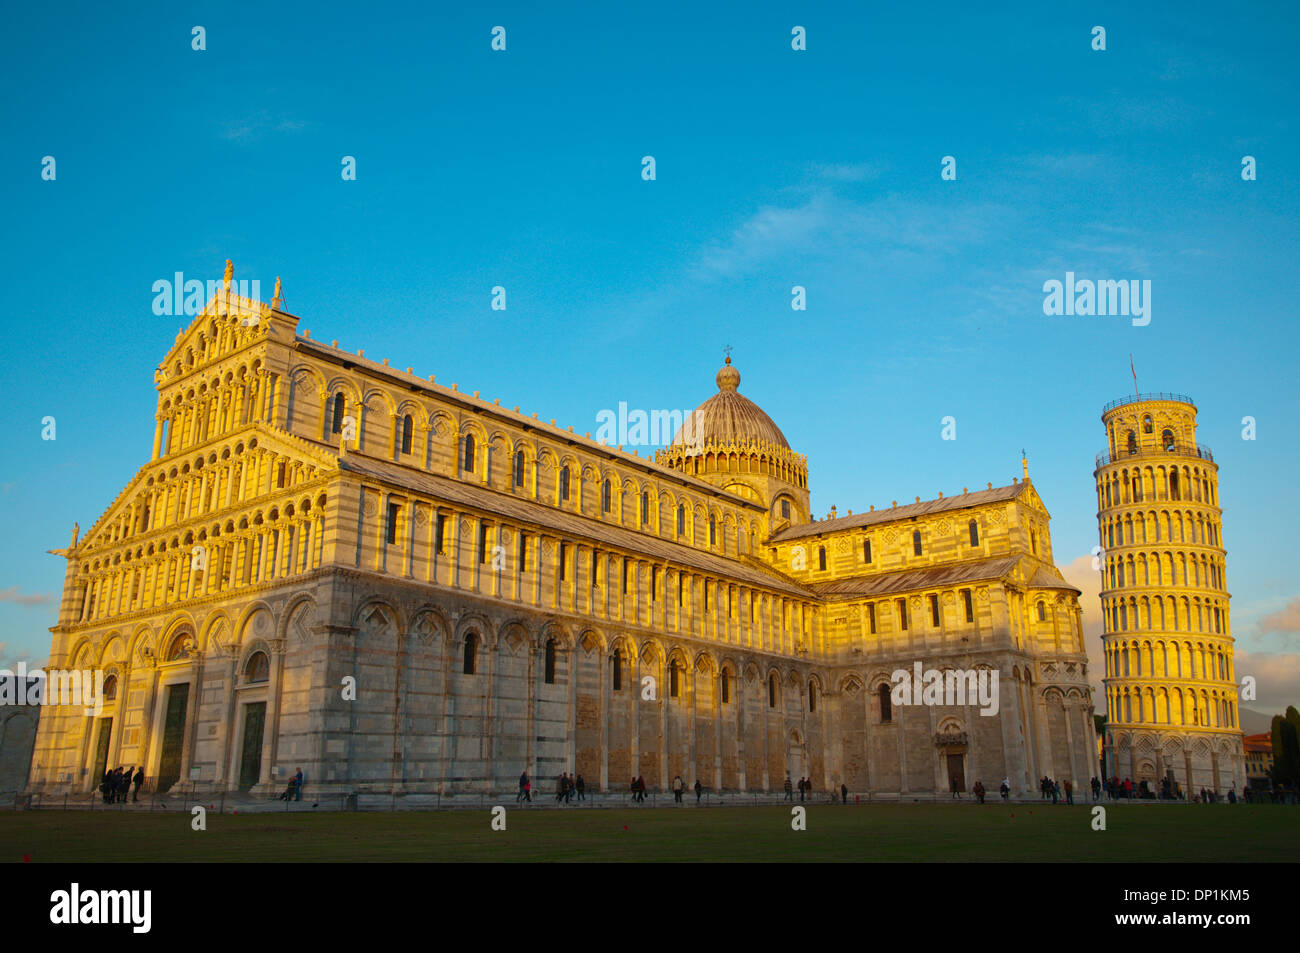 Duomo the Cathedral and Leaning Tower at Piazza del Miracoli the field of miracles Pisa city Tuscany region Italy - Stock Image